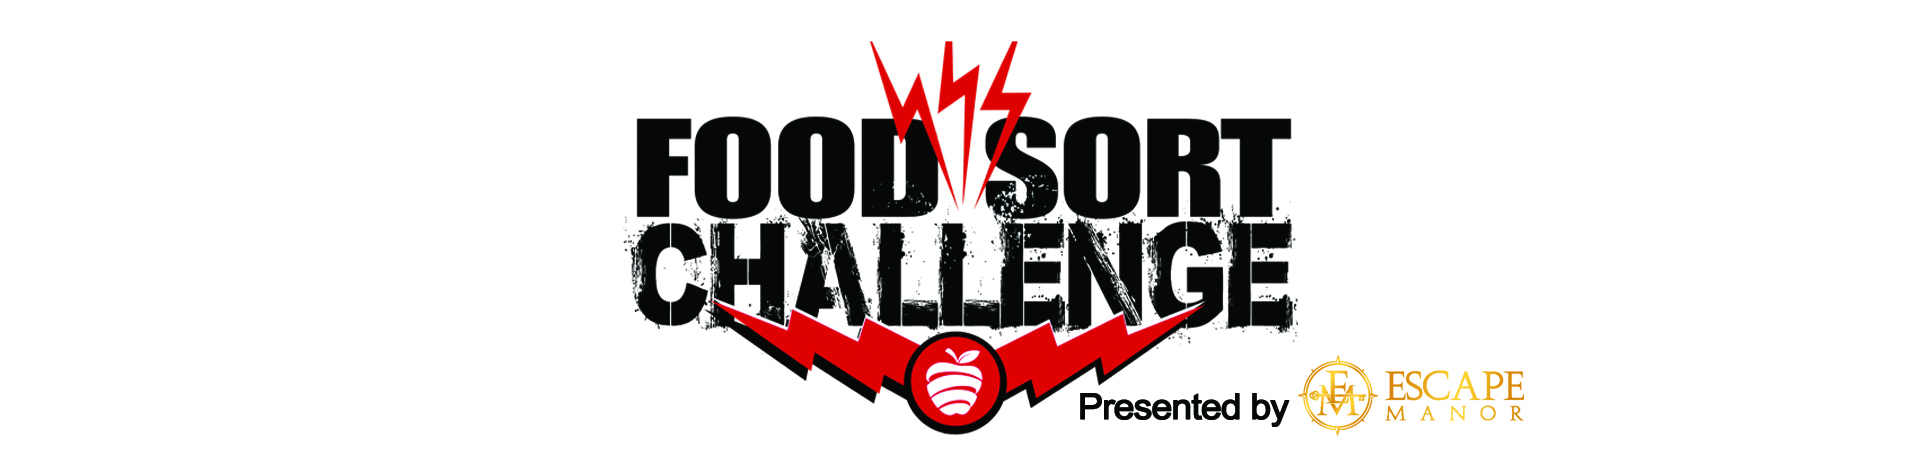 Boone Plumbing and Heating Supply Inc joins the Food Sort Challenge ...